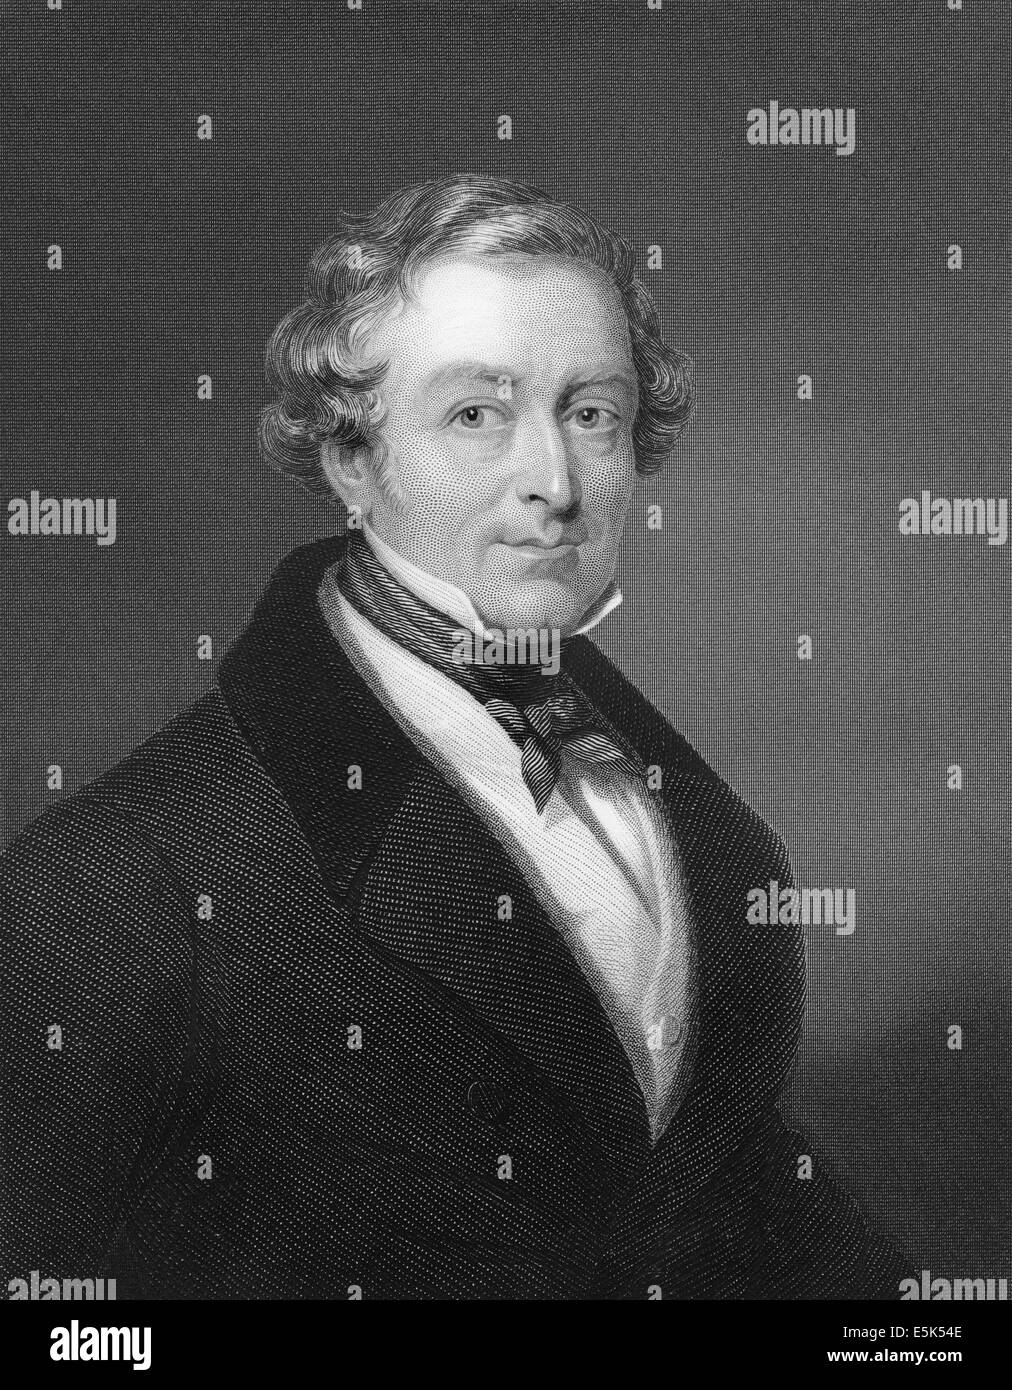 Sir Robert Peel, 1788 - 1850, 2nd Baronet Peel of Clanfield, a British politician, prime minister and founder of - Stock Image